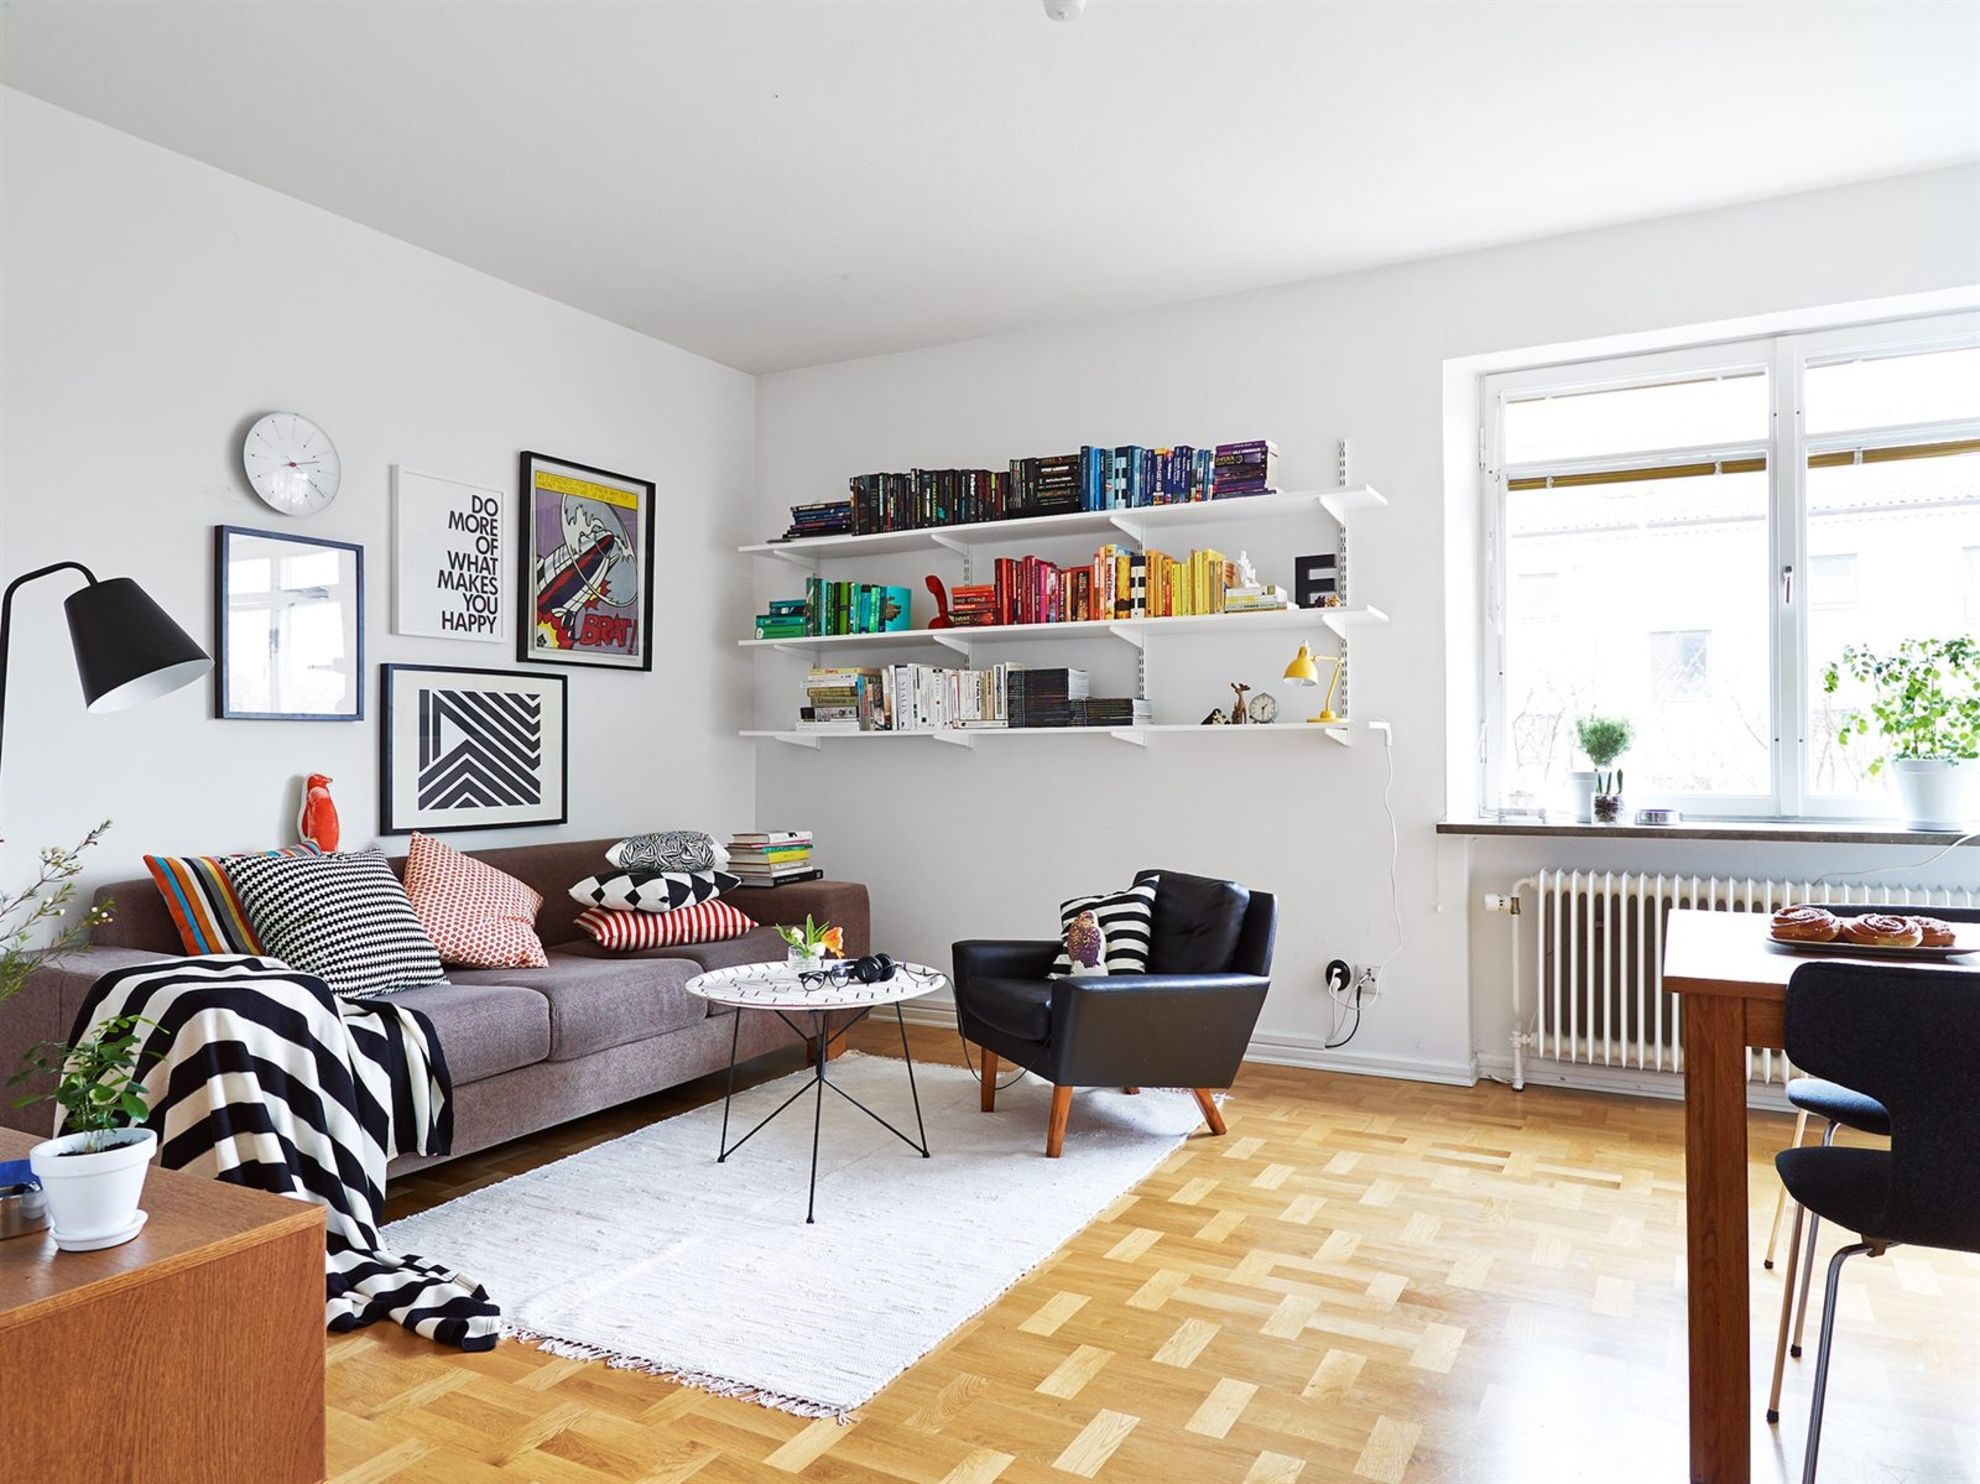 Living Room Furniture Ideas for Any Style of Décor | Scandinavian ...